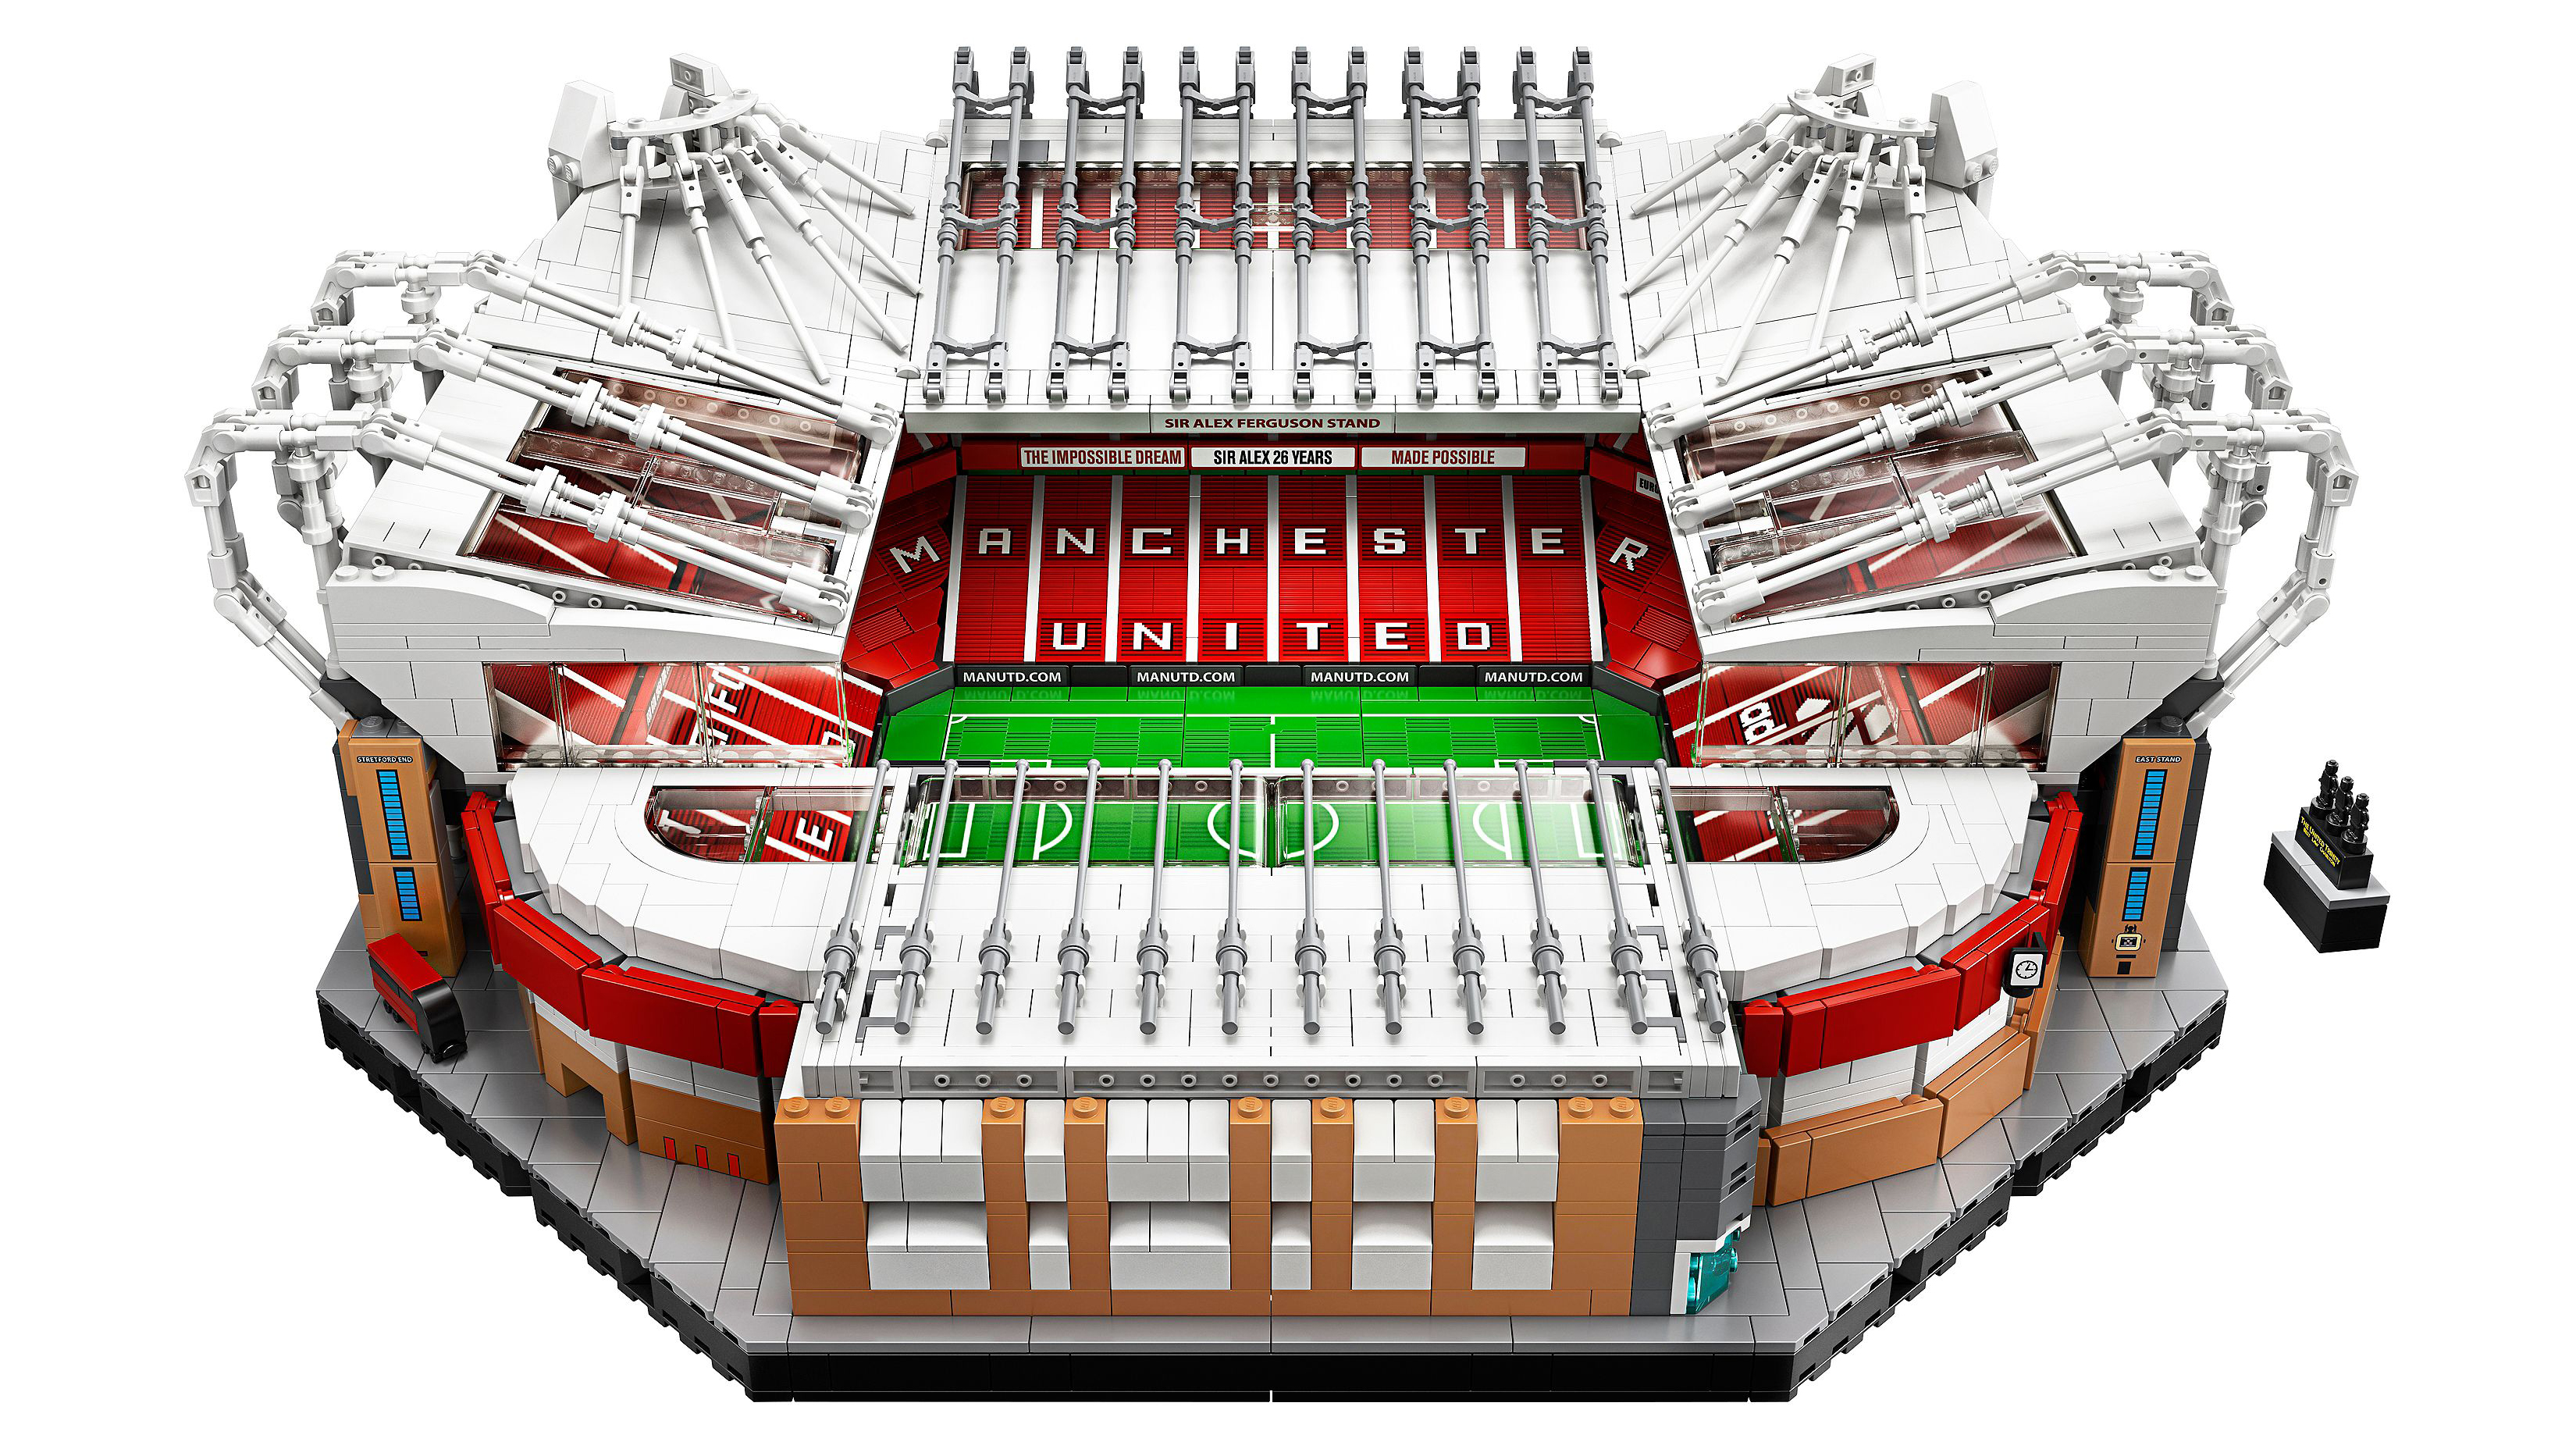 Best Lego Architecture: Old trafford